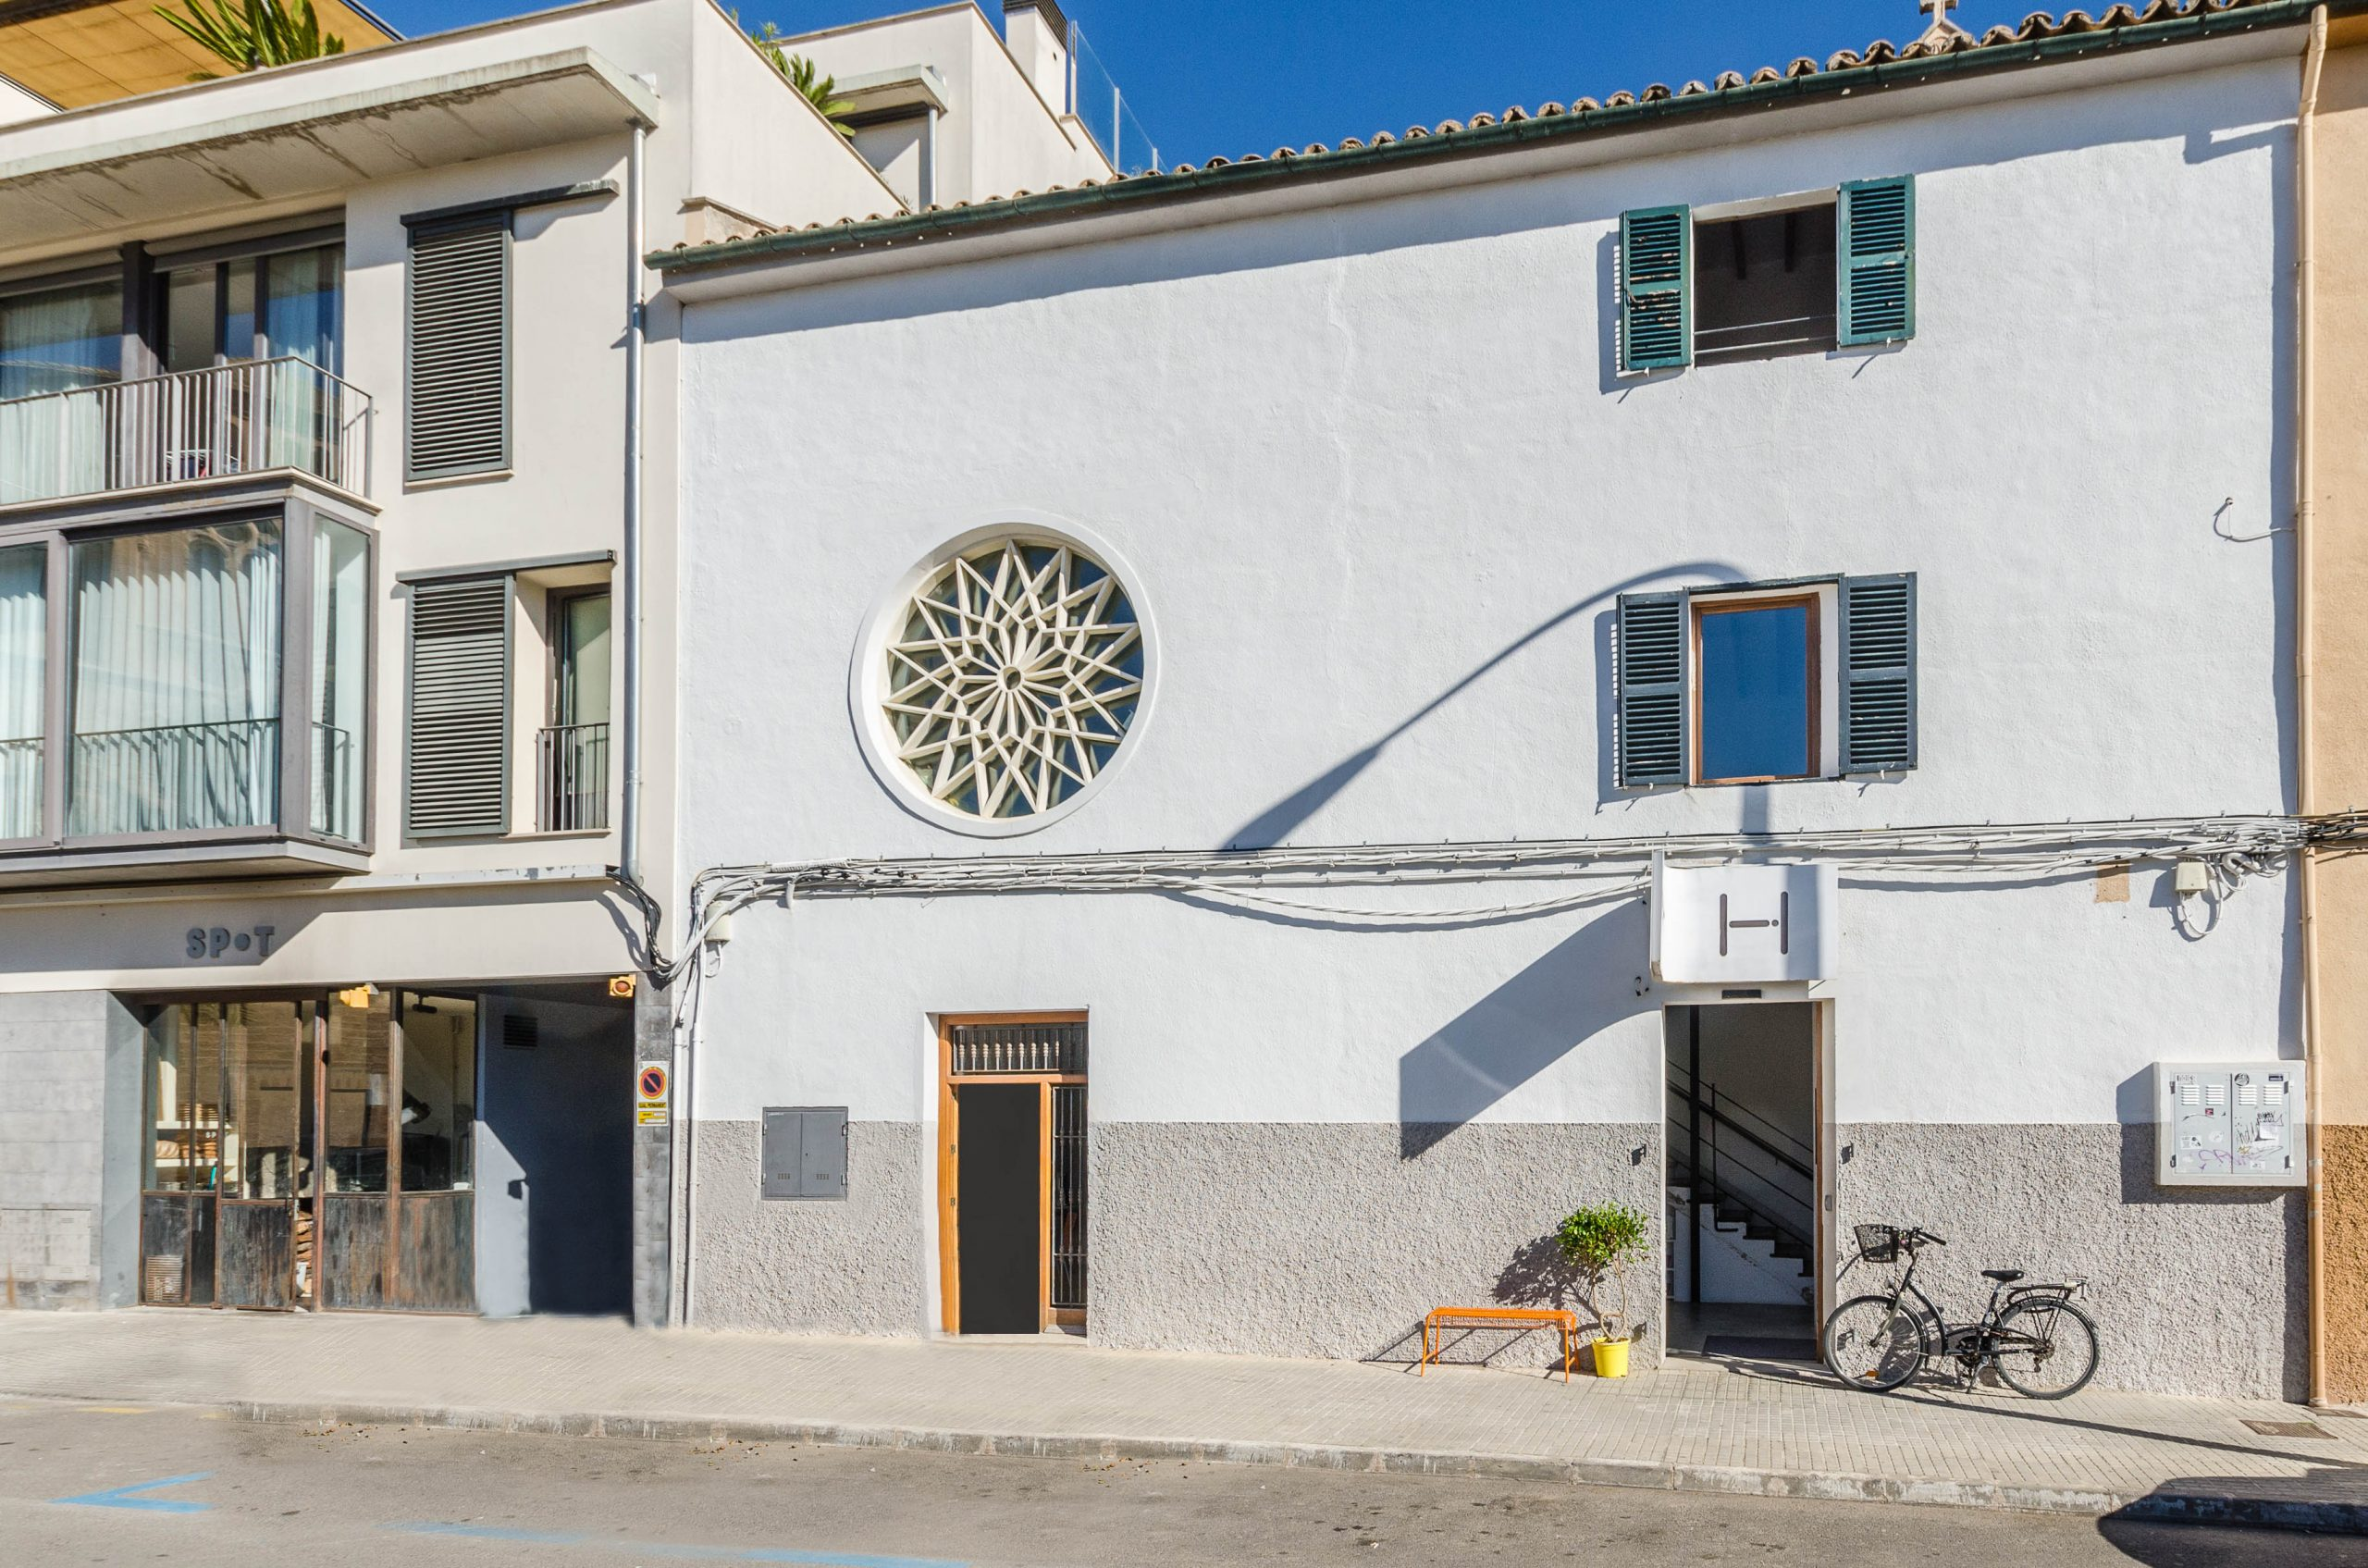 Urban Hostel, Albergue Juvenil, Youth Hostel, welcome to Palma de Mallorca